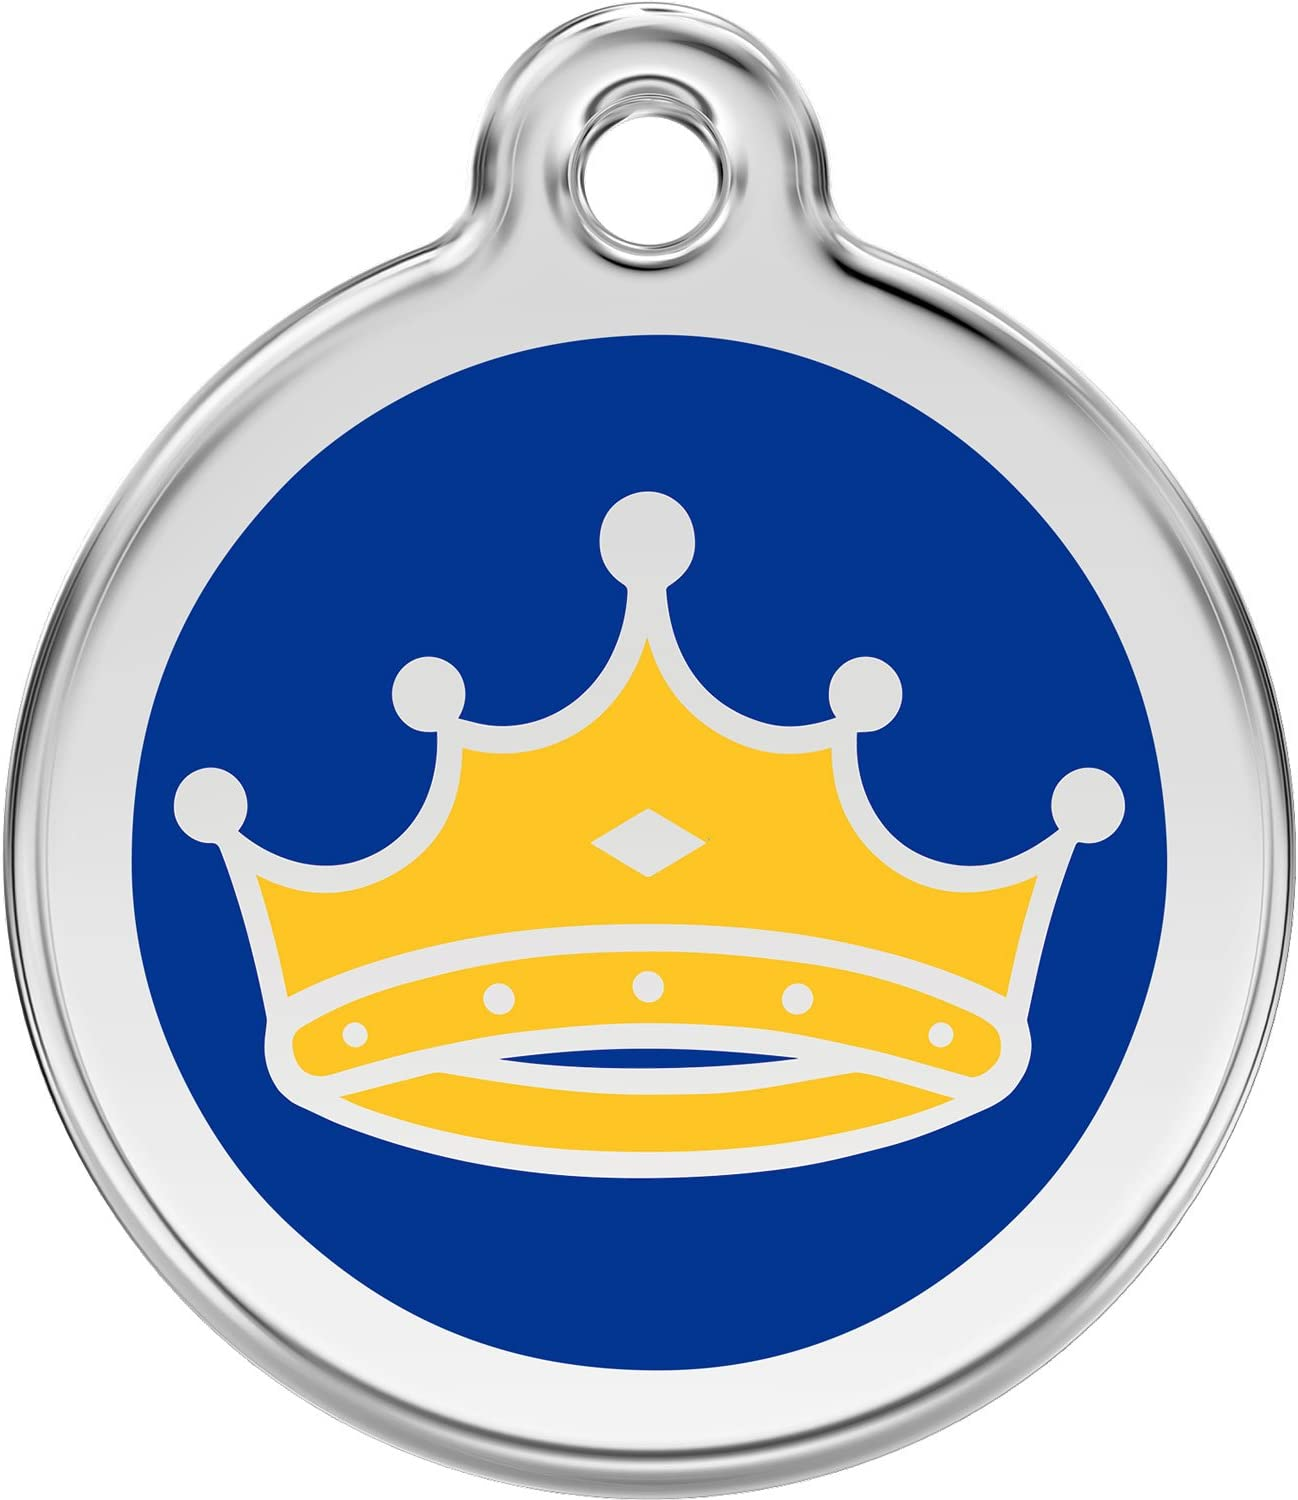 KING/'S CROWN Custom Personalized Pet ID Tag for Dog and Cat Collars